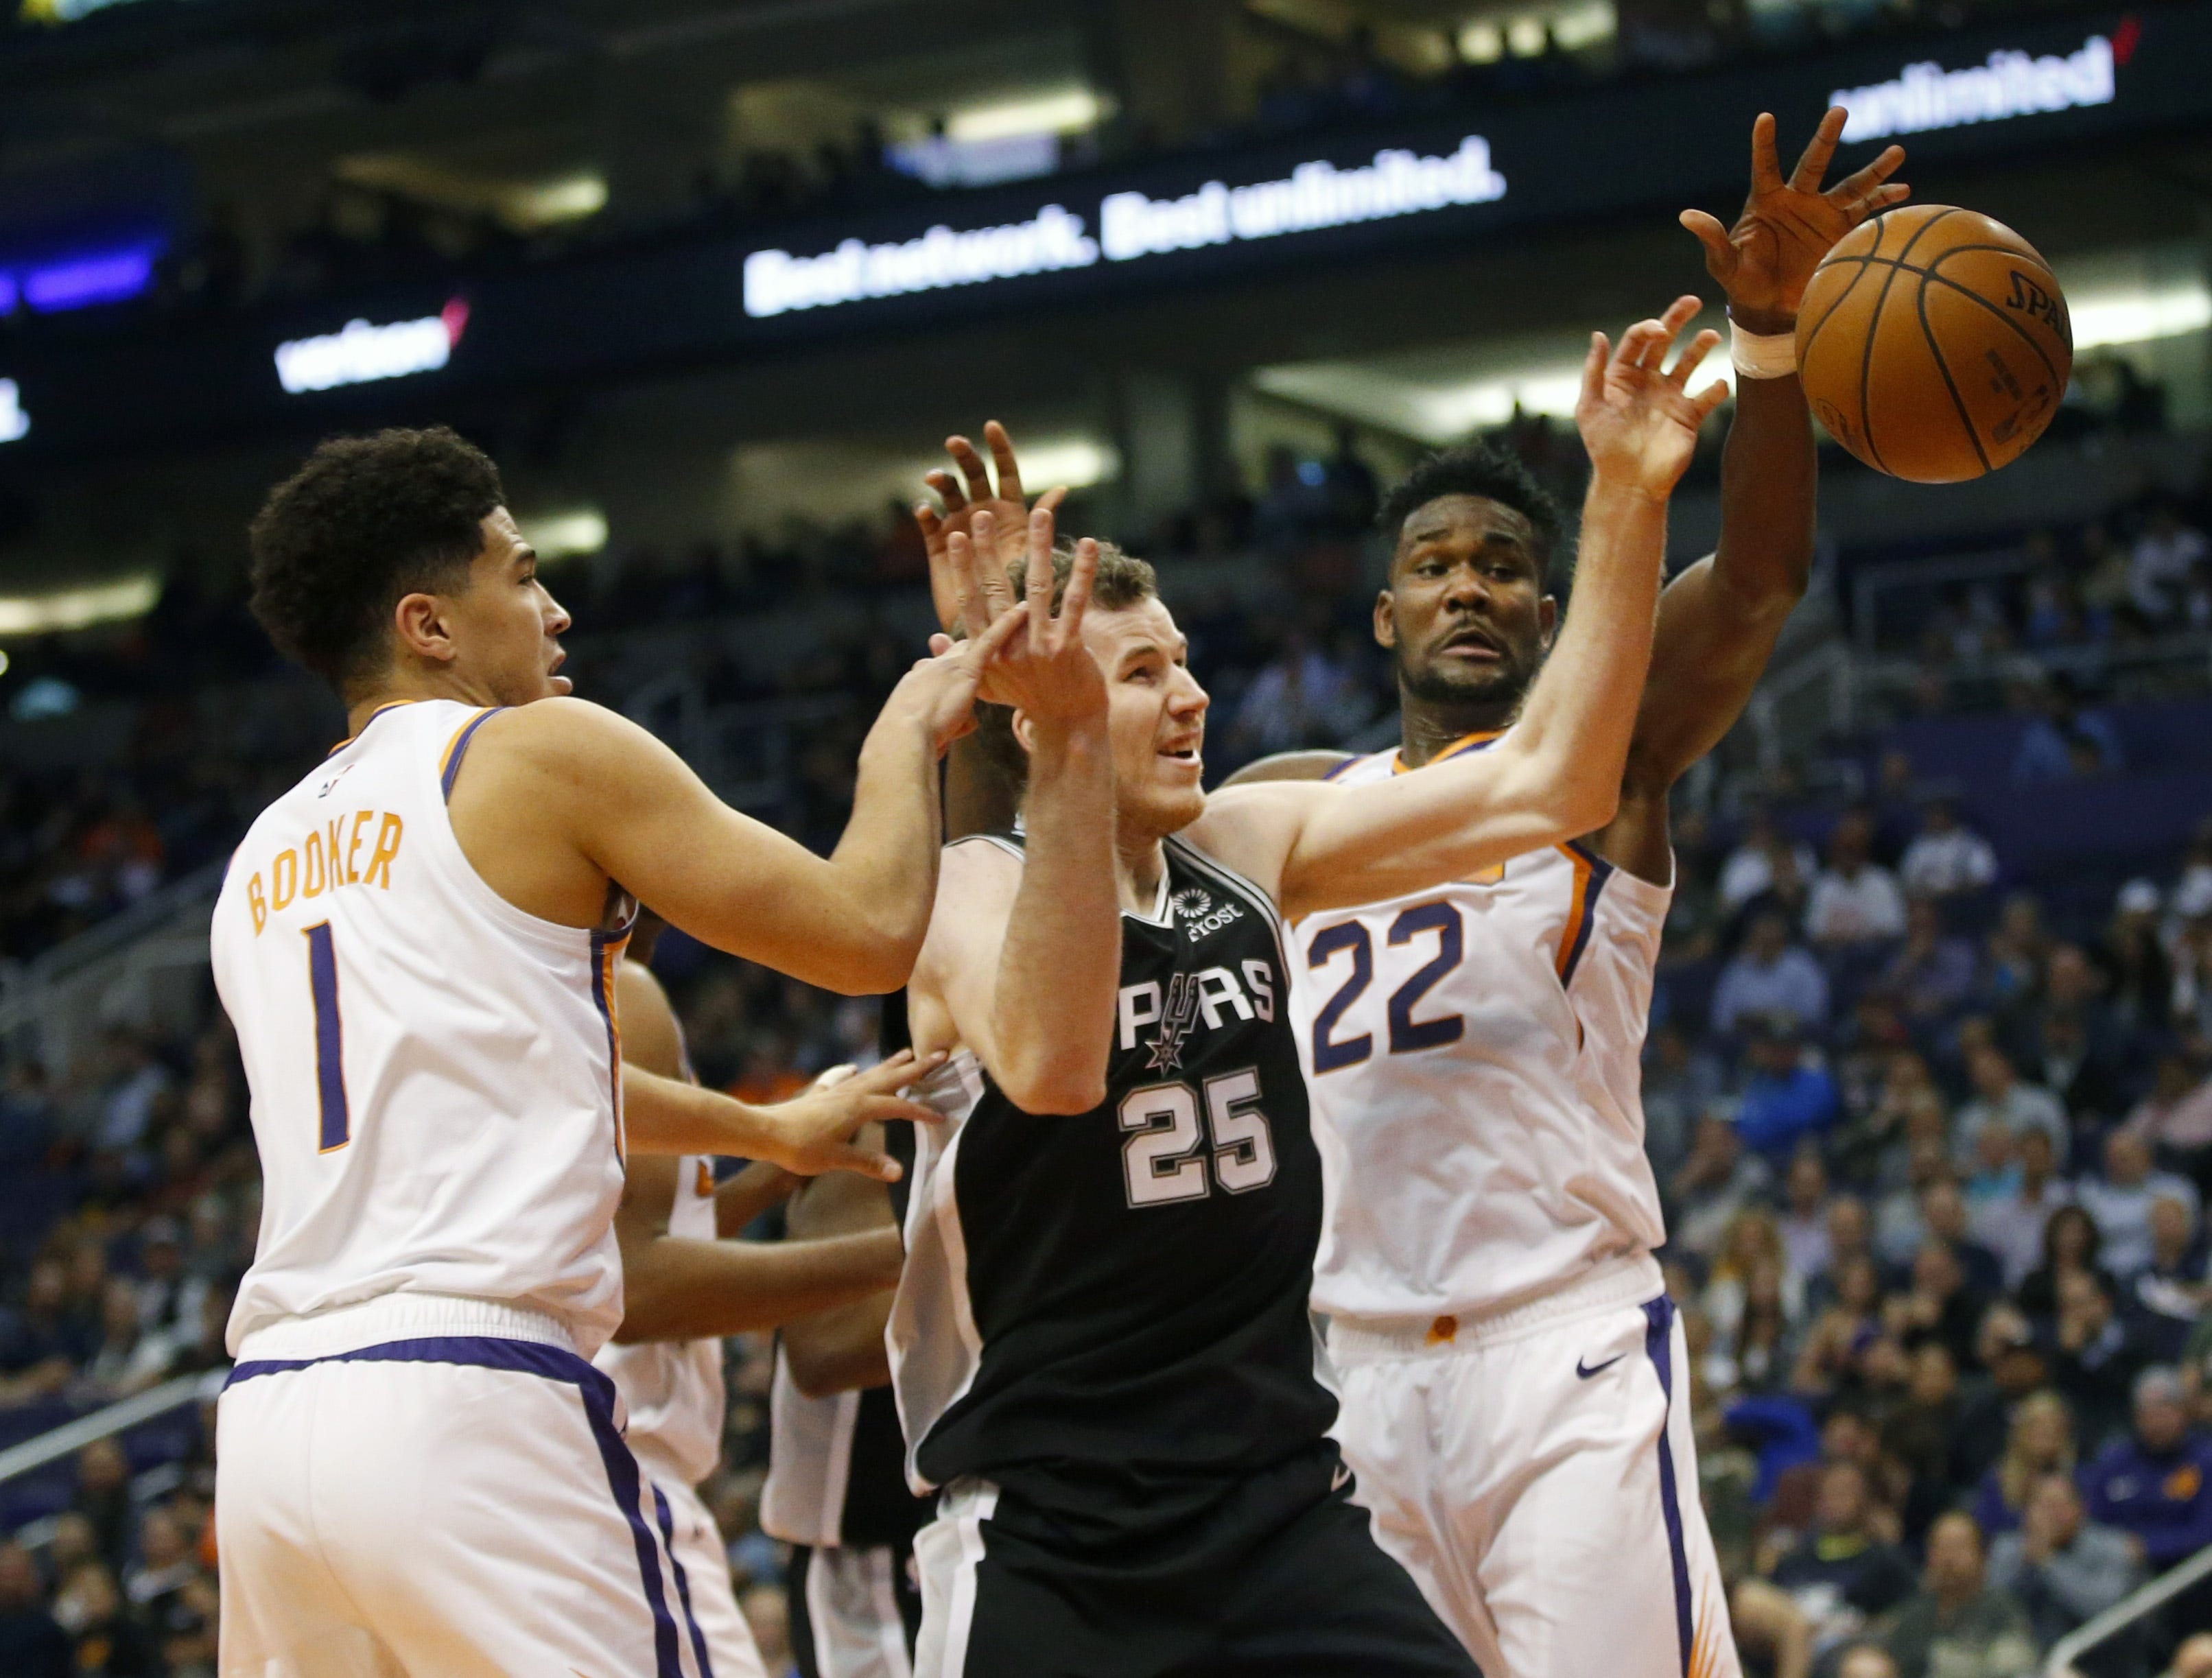 Phoenix Suns guard Devin Booker (1) and center Deandre Ayton (22) battle San Antonio Spurs center Jakob Poeltl (25) for the ball during a NBA game at Talking Stick Arena in Phoenix on November 14.